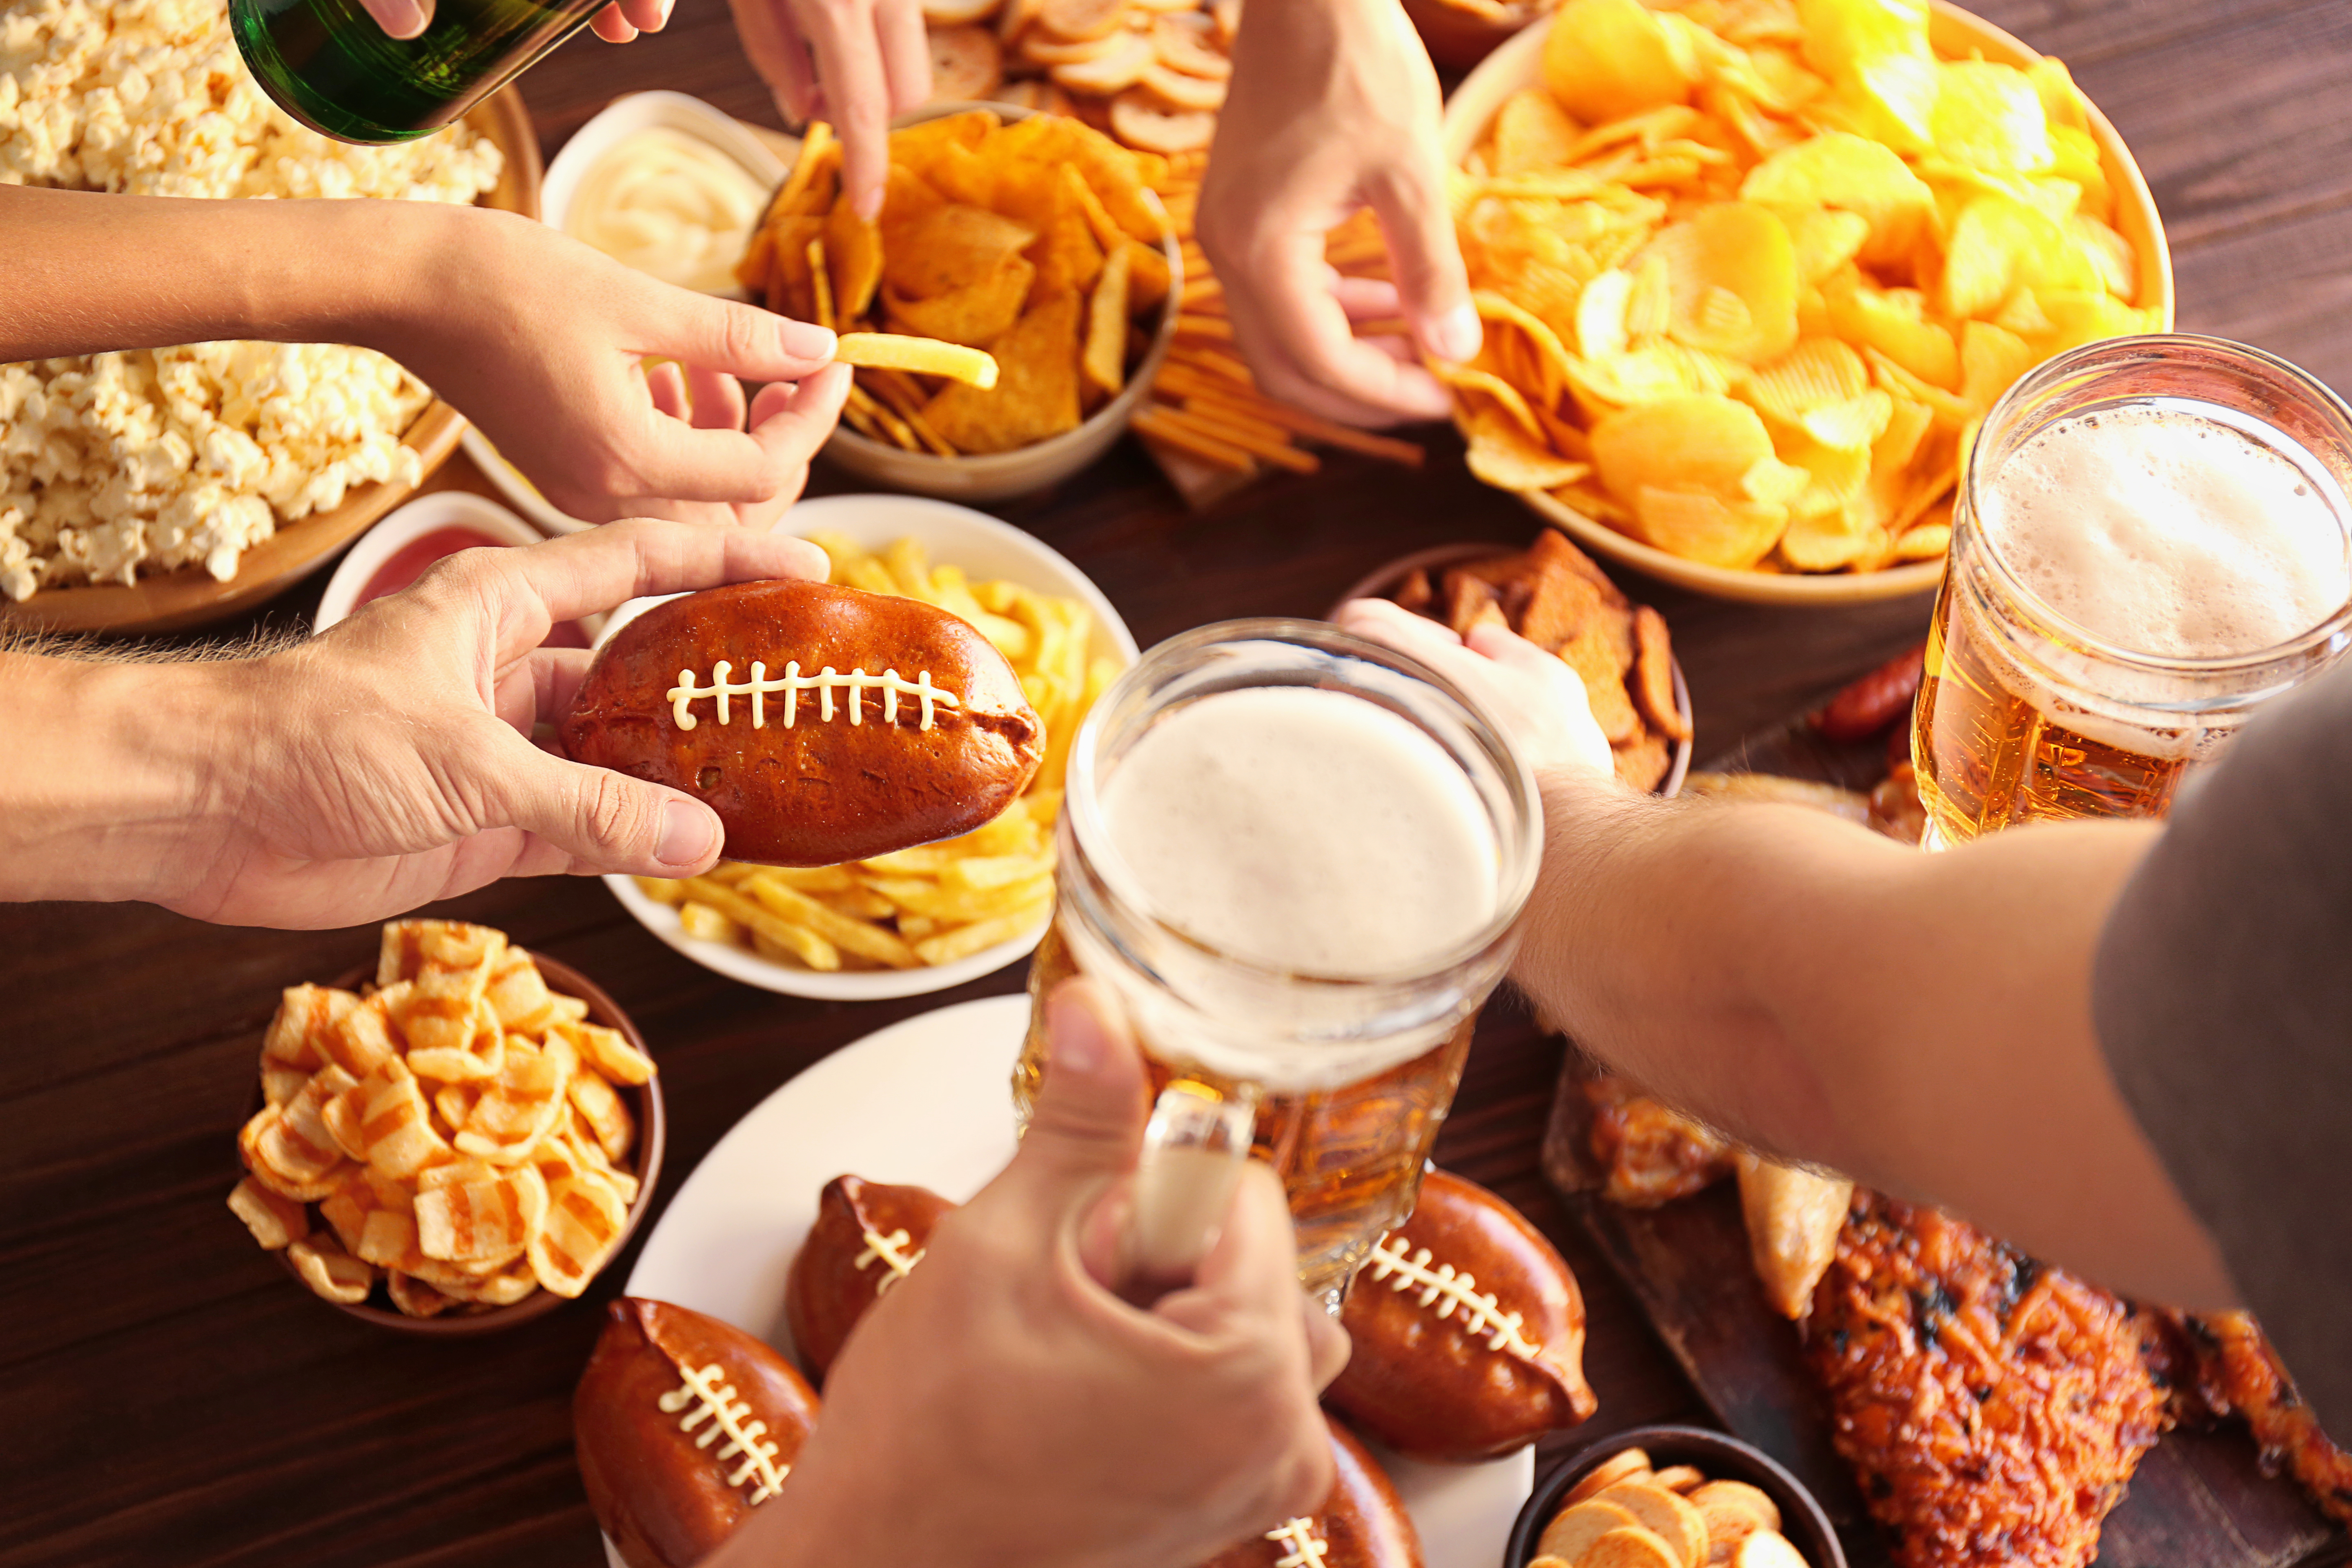 5 Favorite Football Foods to Make While Watching the Game at Home